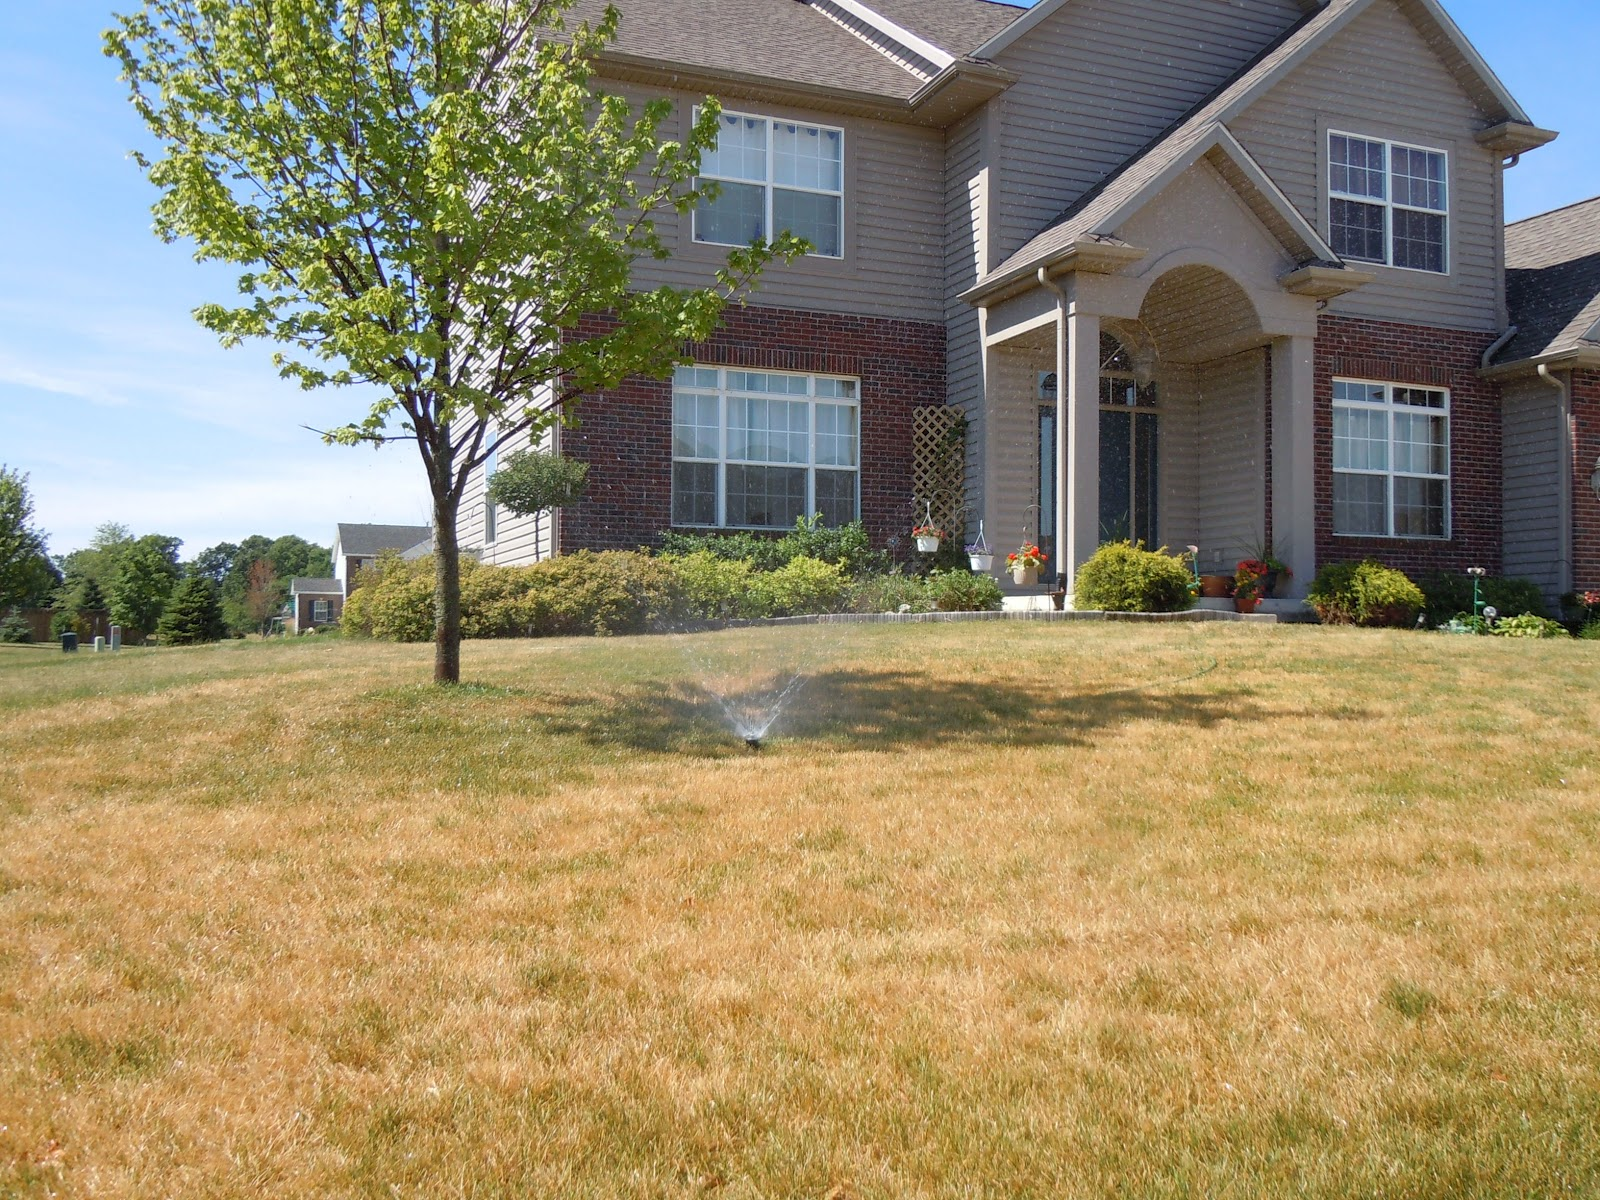 Dry Lawn with Irrigation System